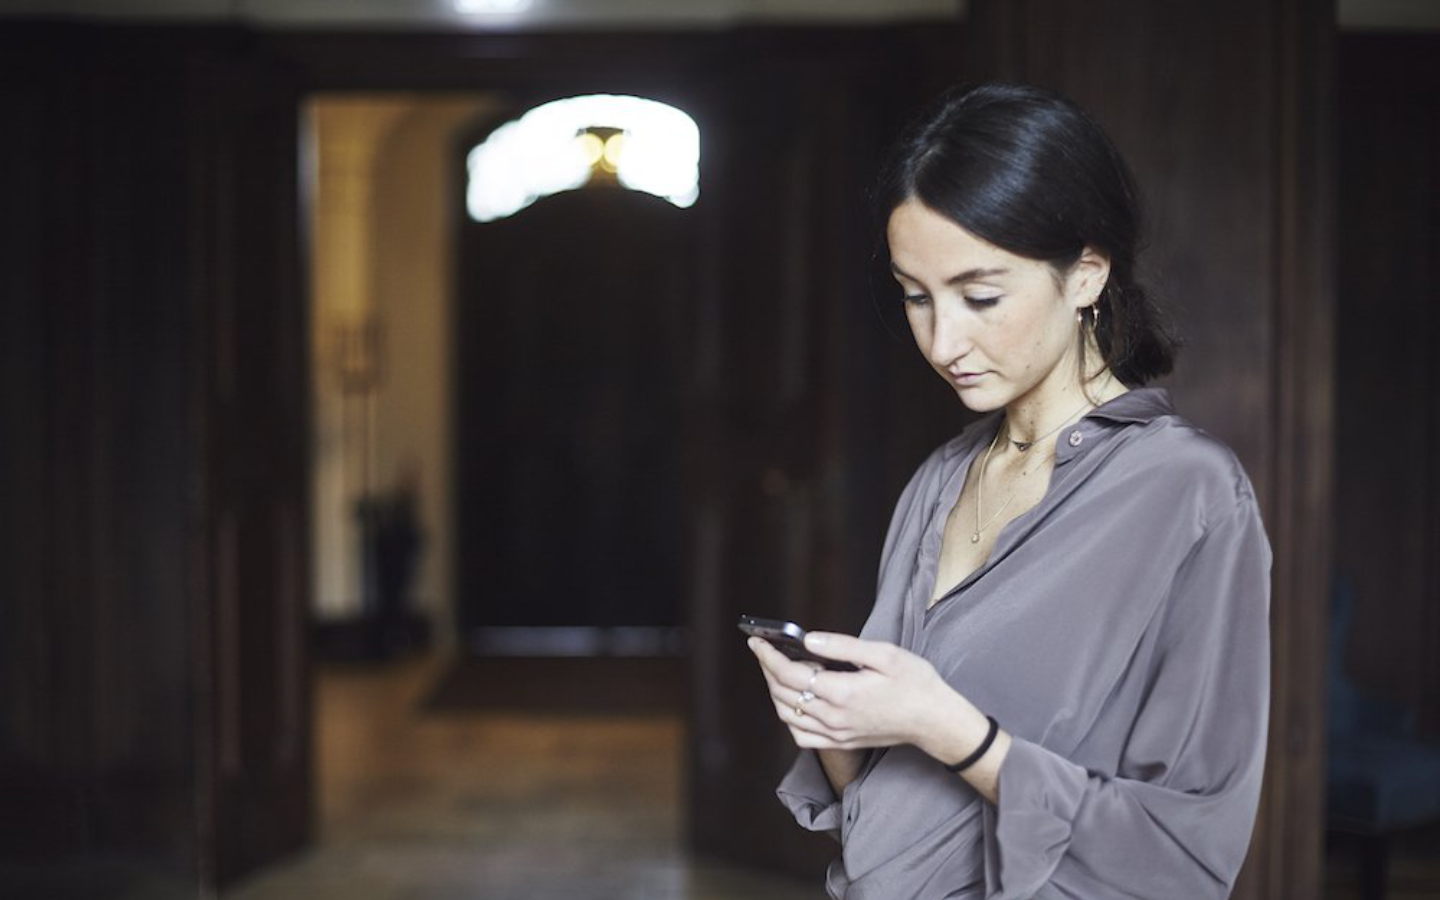 Woman in the hotel corridor with Smartphone